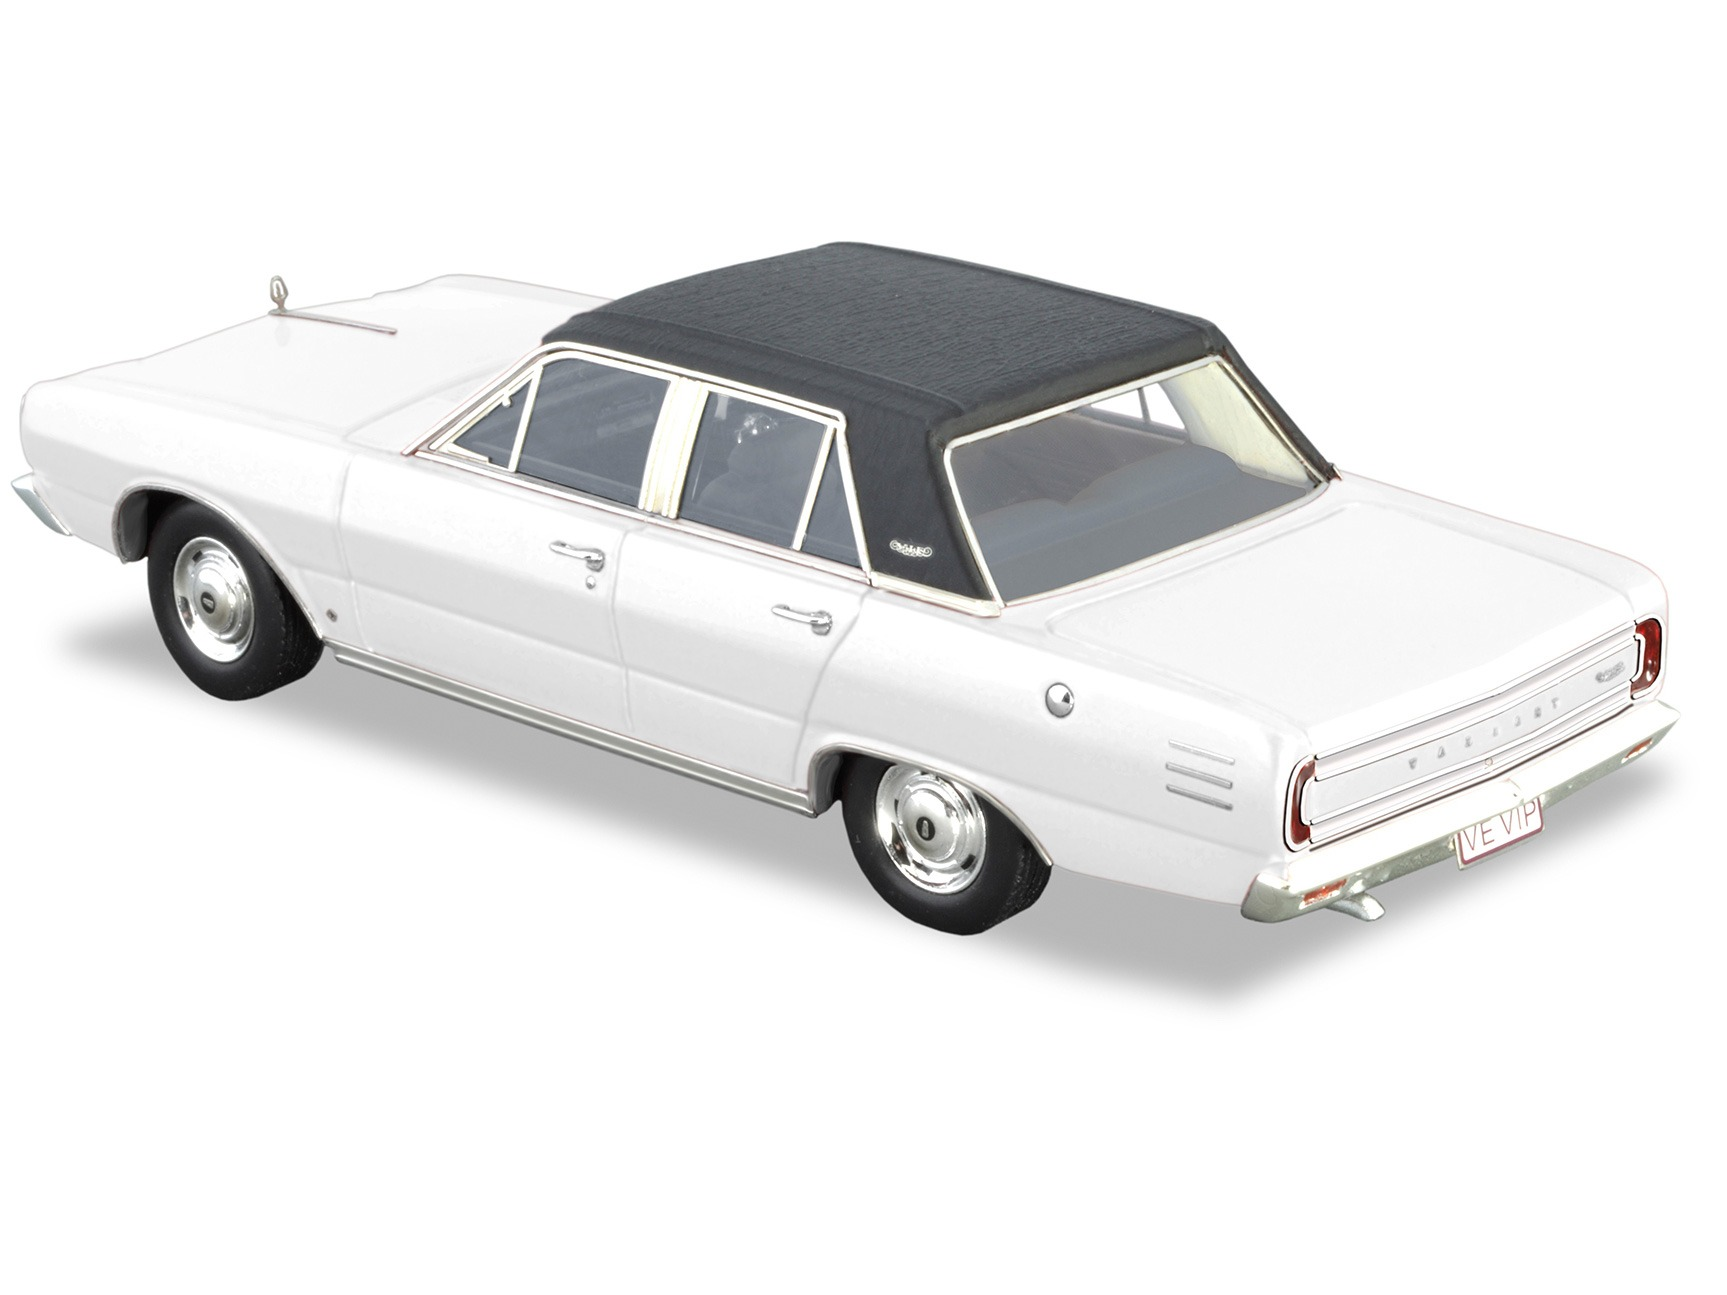 1968 Valiant VE VIP – Alpine White